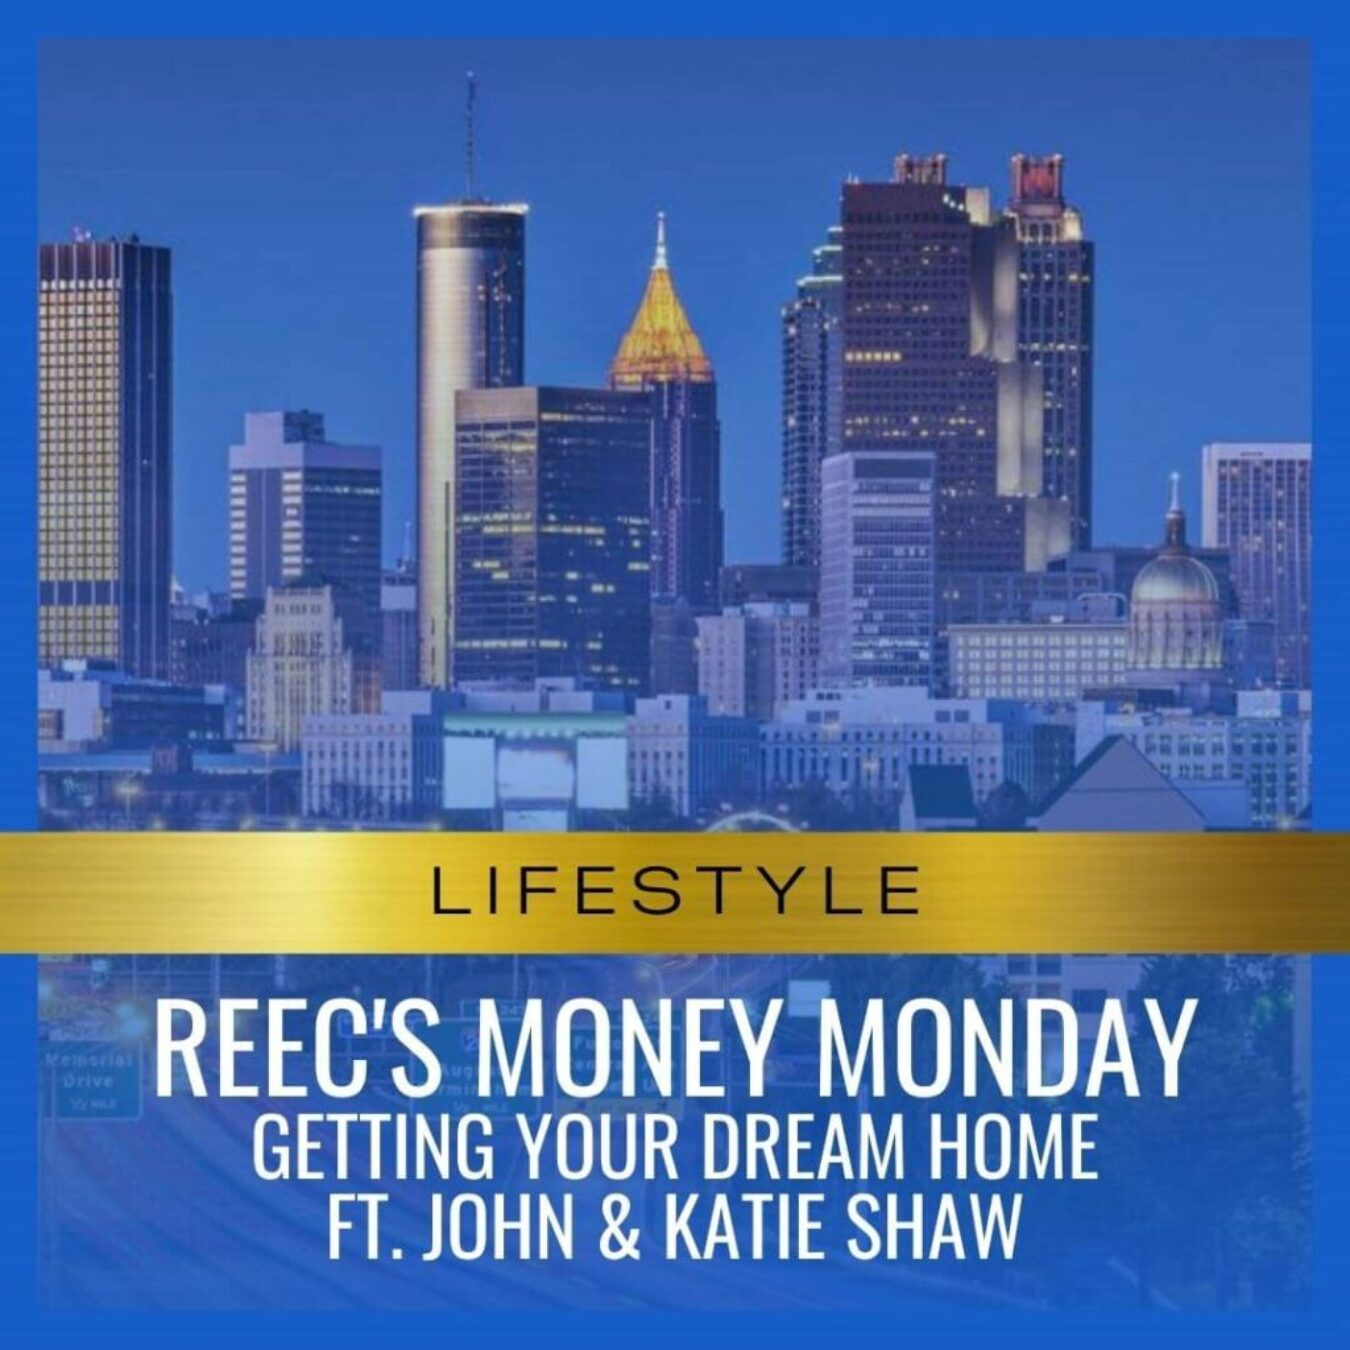 Reec's Money Monday Getting your dream home Ft. John & Katie Shaw